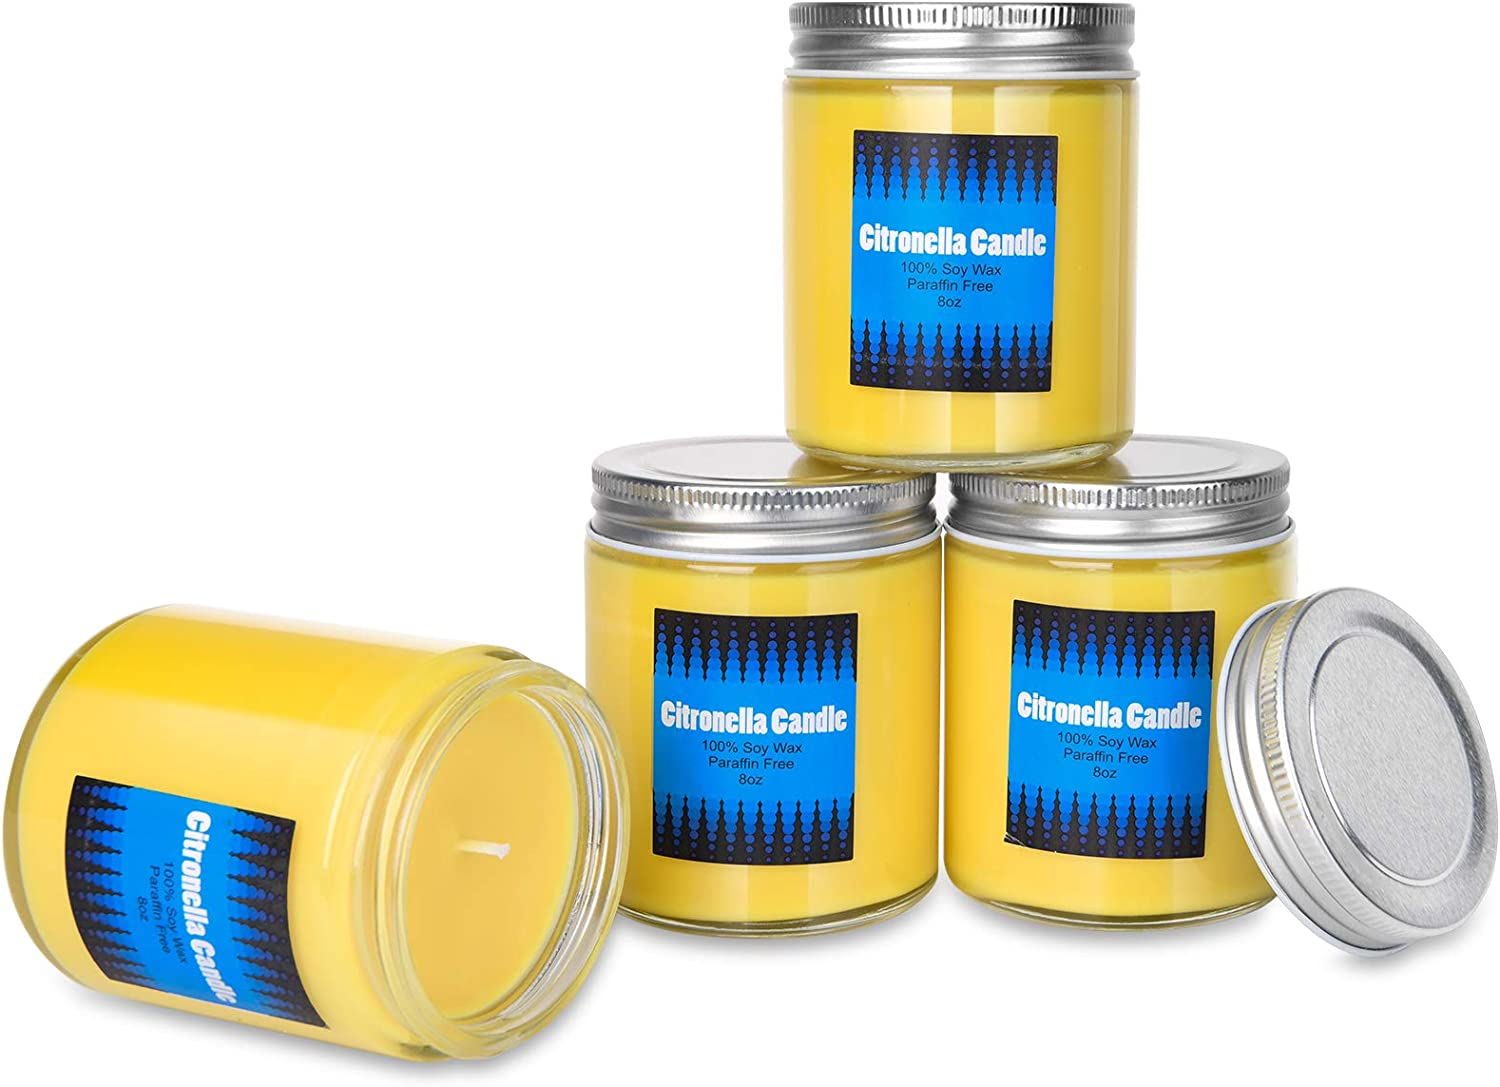 Citronella Candles Outdoor, HOUSECRET Long-Lasting Scented Candles Gifts Set for Women Highly Scented Natural Soy Wax Candle, 4x8oz Portable Travel Jar Candle for Home, Garden, Patio, Backyard